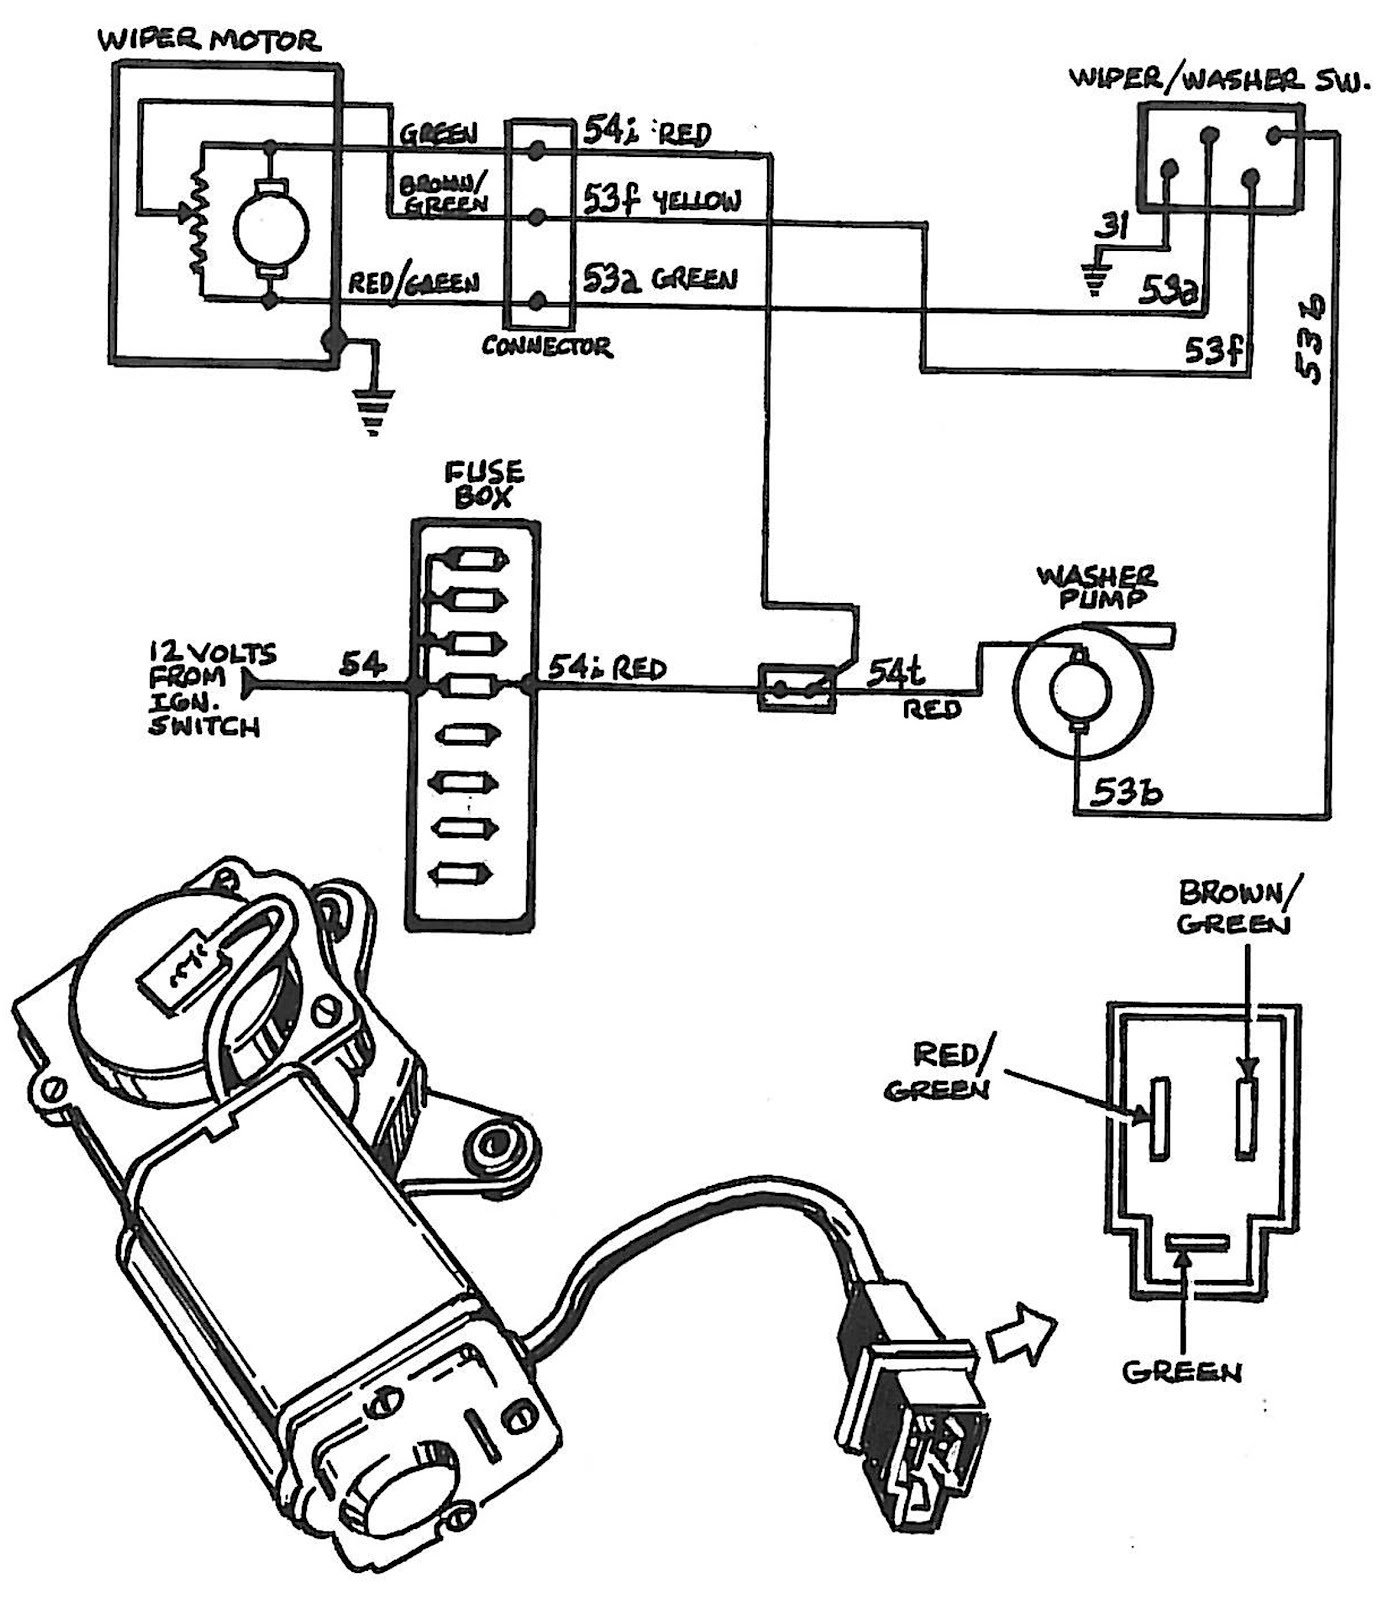 Diagram 1968 Chevelle Wiper Motor Wiring Diagram Full Version Hd Quality Wiring Diagram Liveprin Oltreilmurofestival It